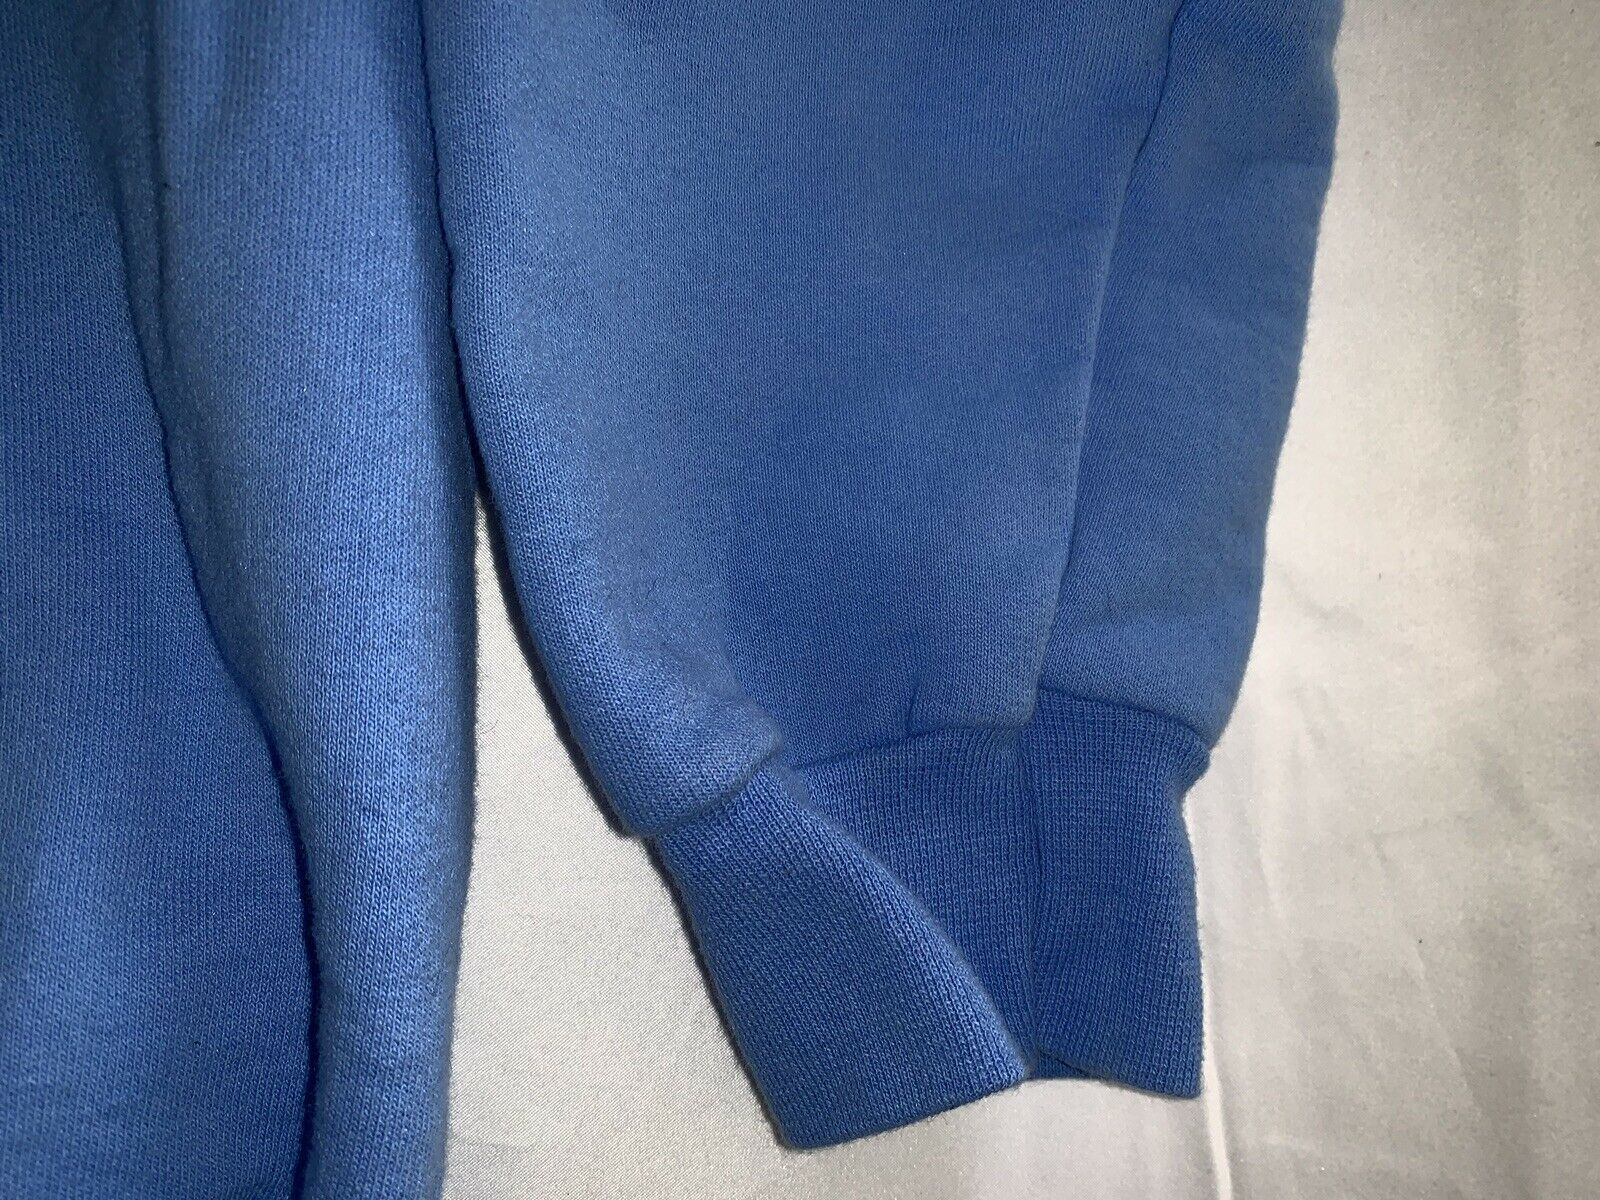 Hanes Ultimate Cotton Crewneck PrintPro Sweatshirt Size M Blue Blank